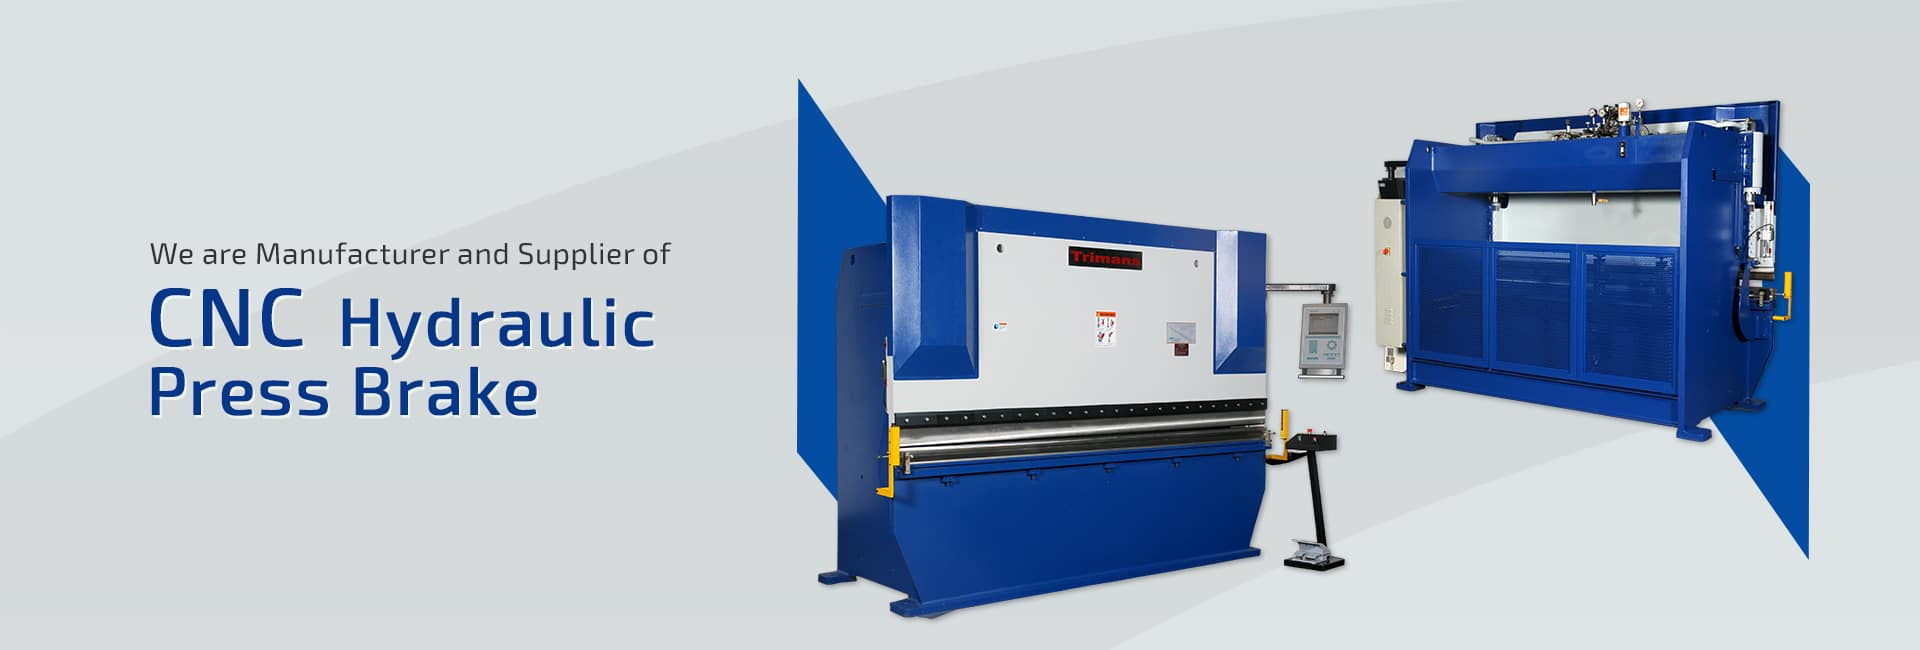 CNC Hydraulic Press Brake Manufacturer, Supplier and Exporter in Ahmedabad, Gujarat, India